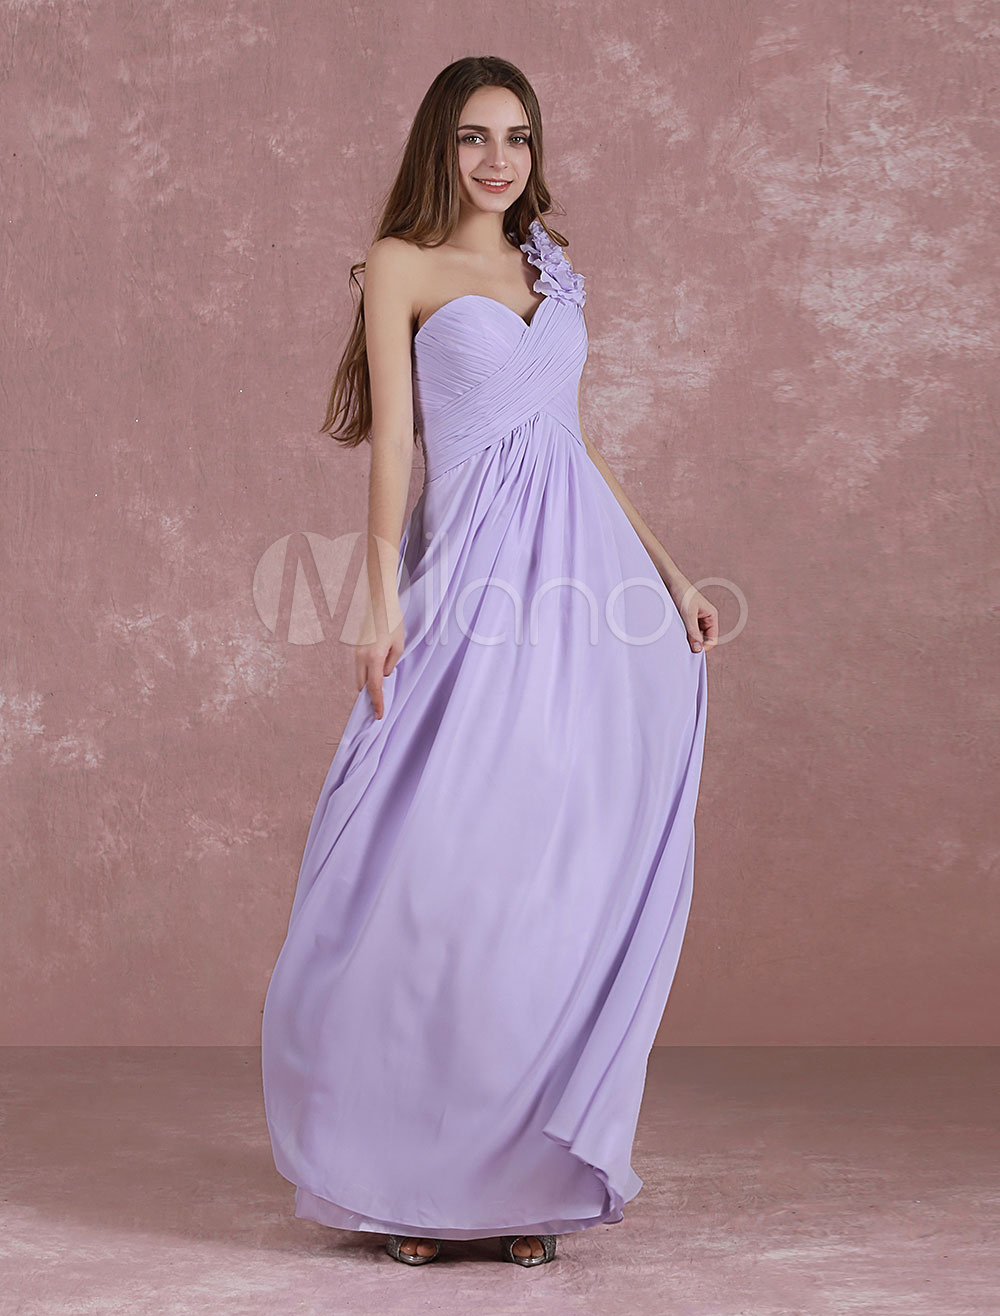 Long Bridesmaid Dress One Shoulder Sweetheart Homecoming Dress A Line Floor-Length Pleated Chiffon Wedding Party Dress With Flower